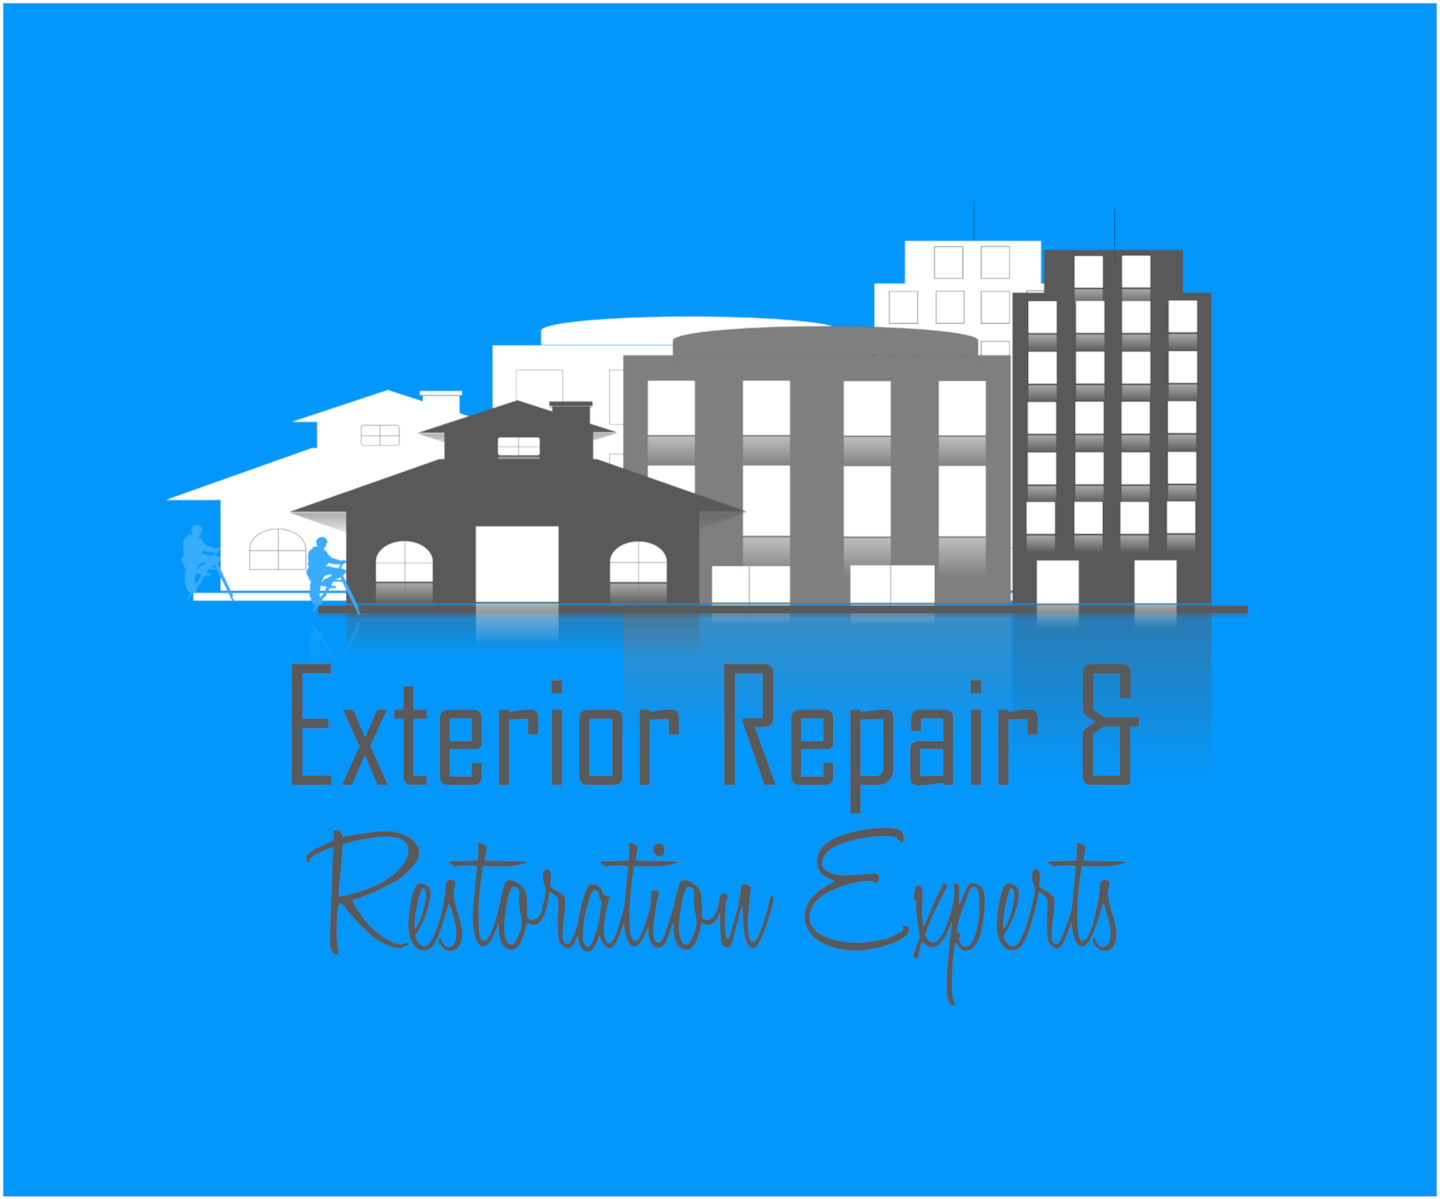 Exterior Repair & Restoration Experts